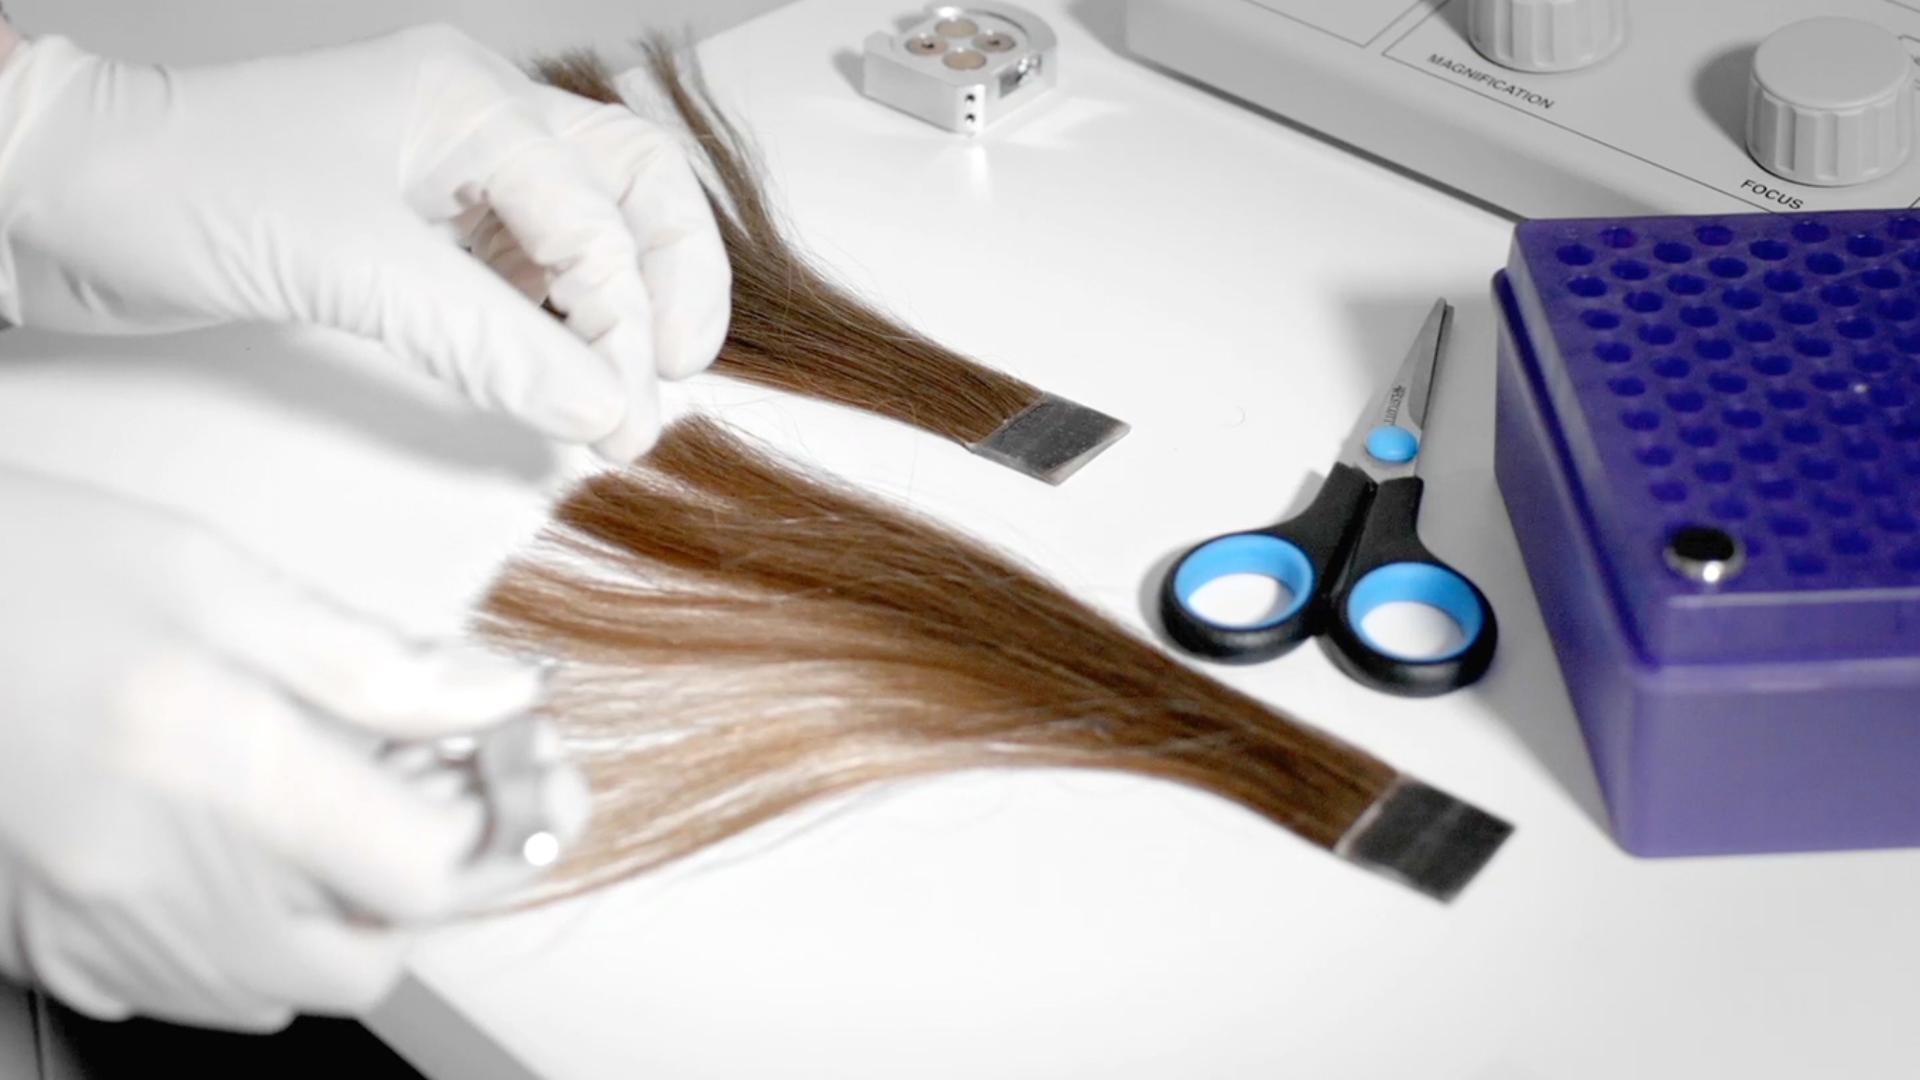 Real hair being tested in a laboratory.